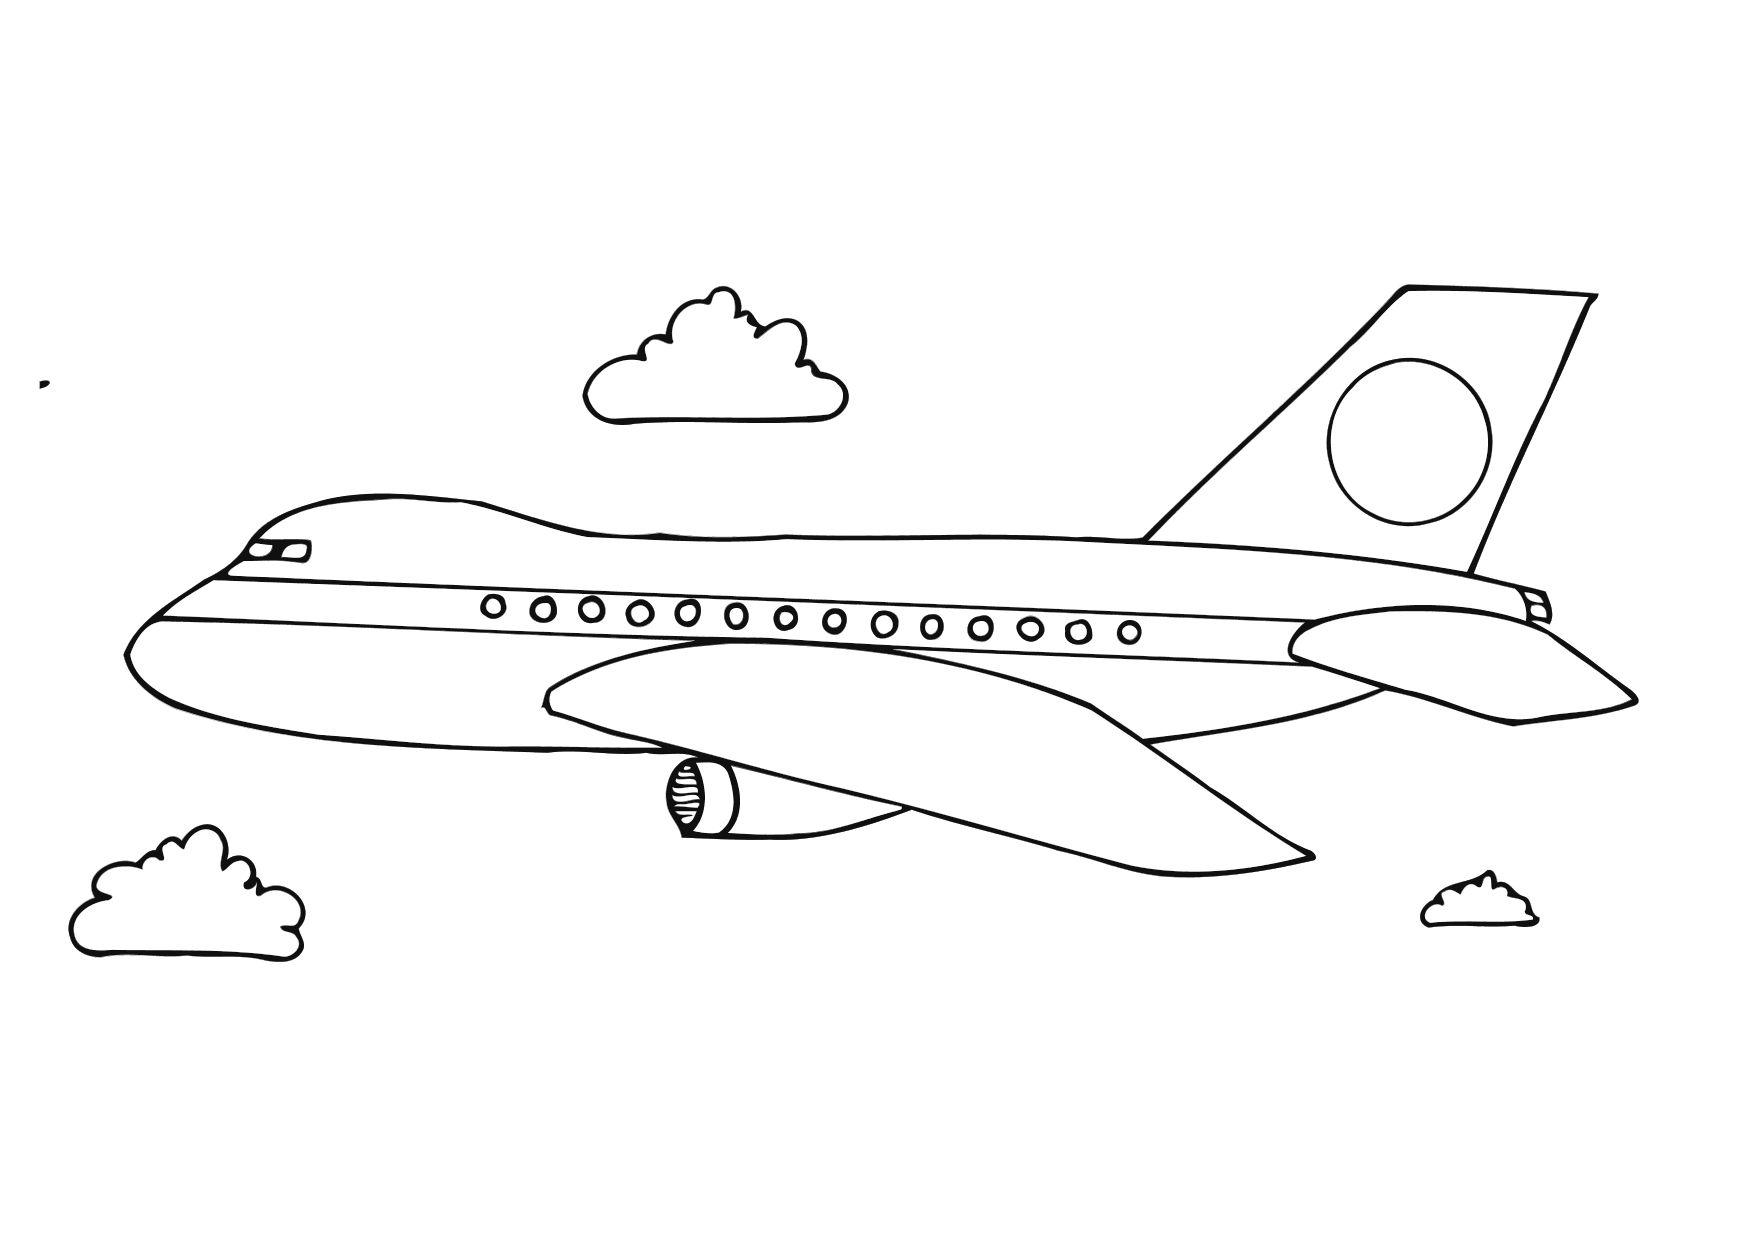 Coloriage avion img 12281 - Coloriage avion ...